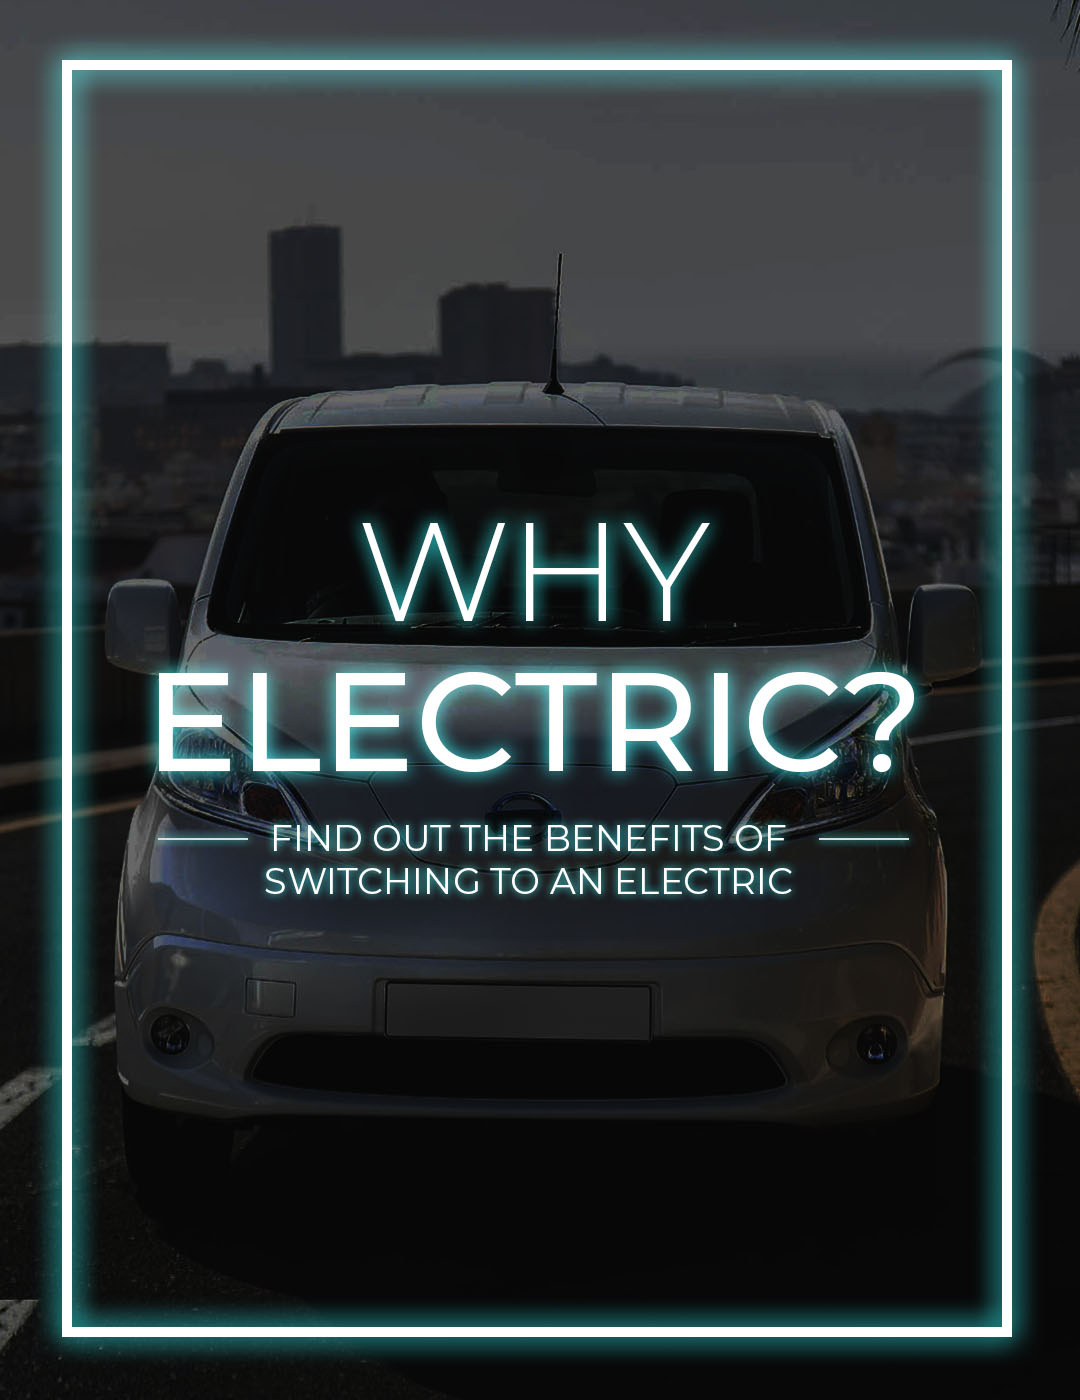 Why Electric? Mobile